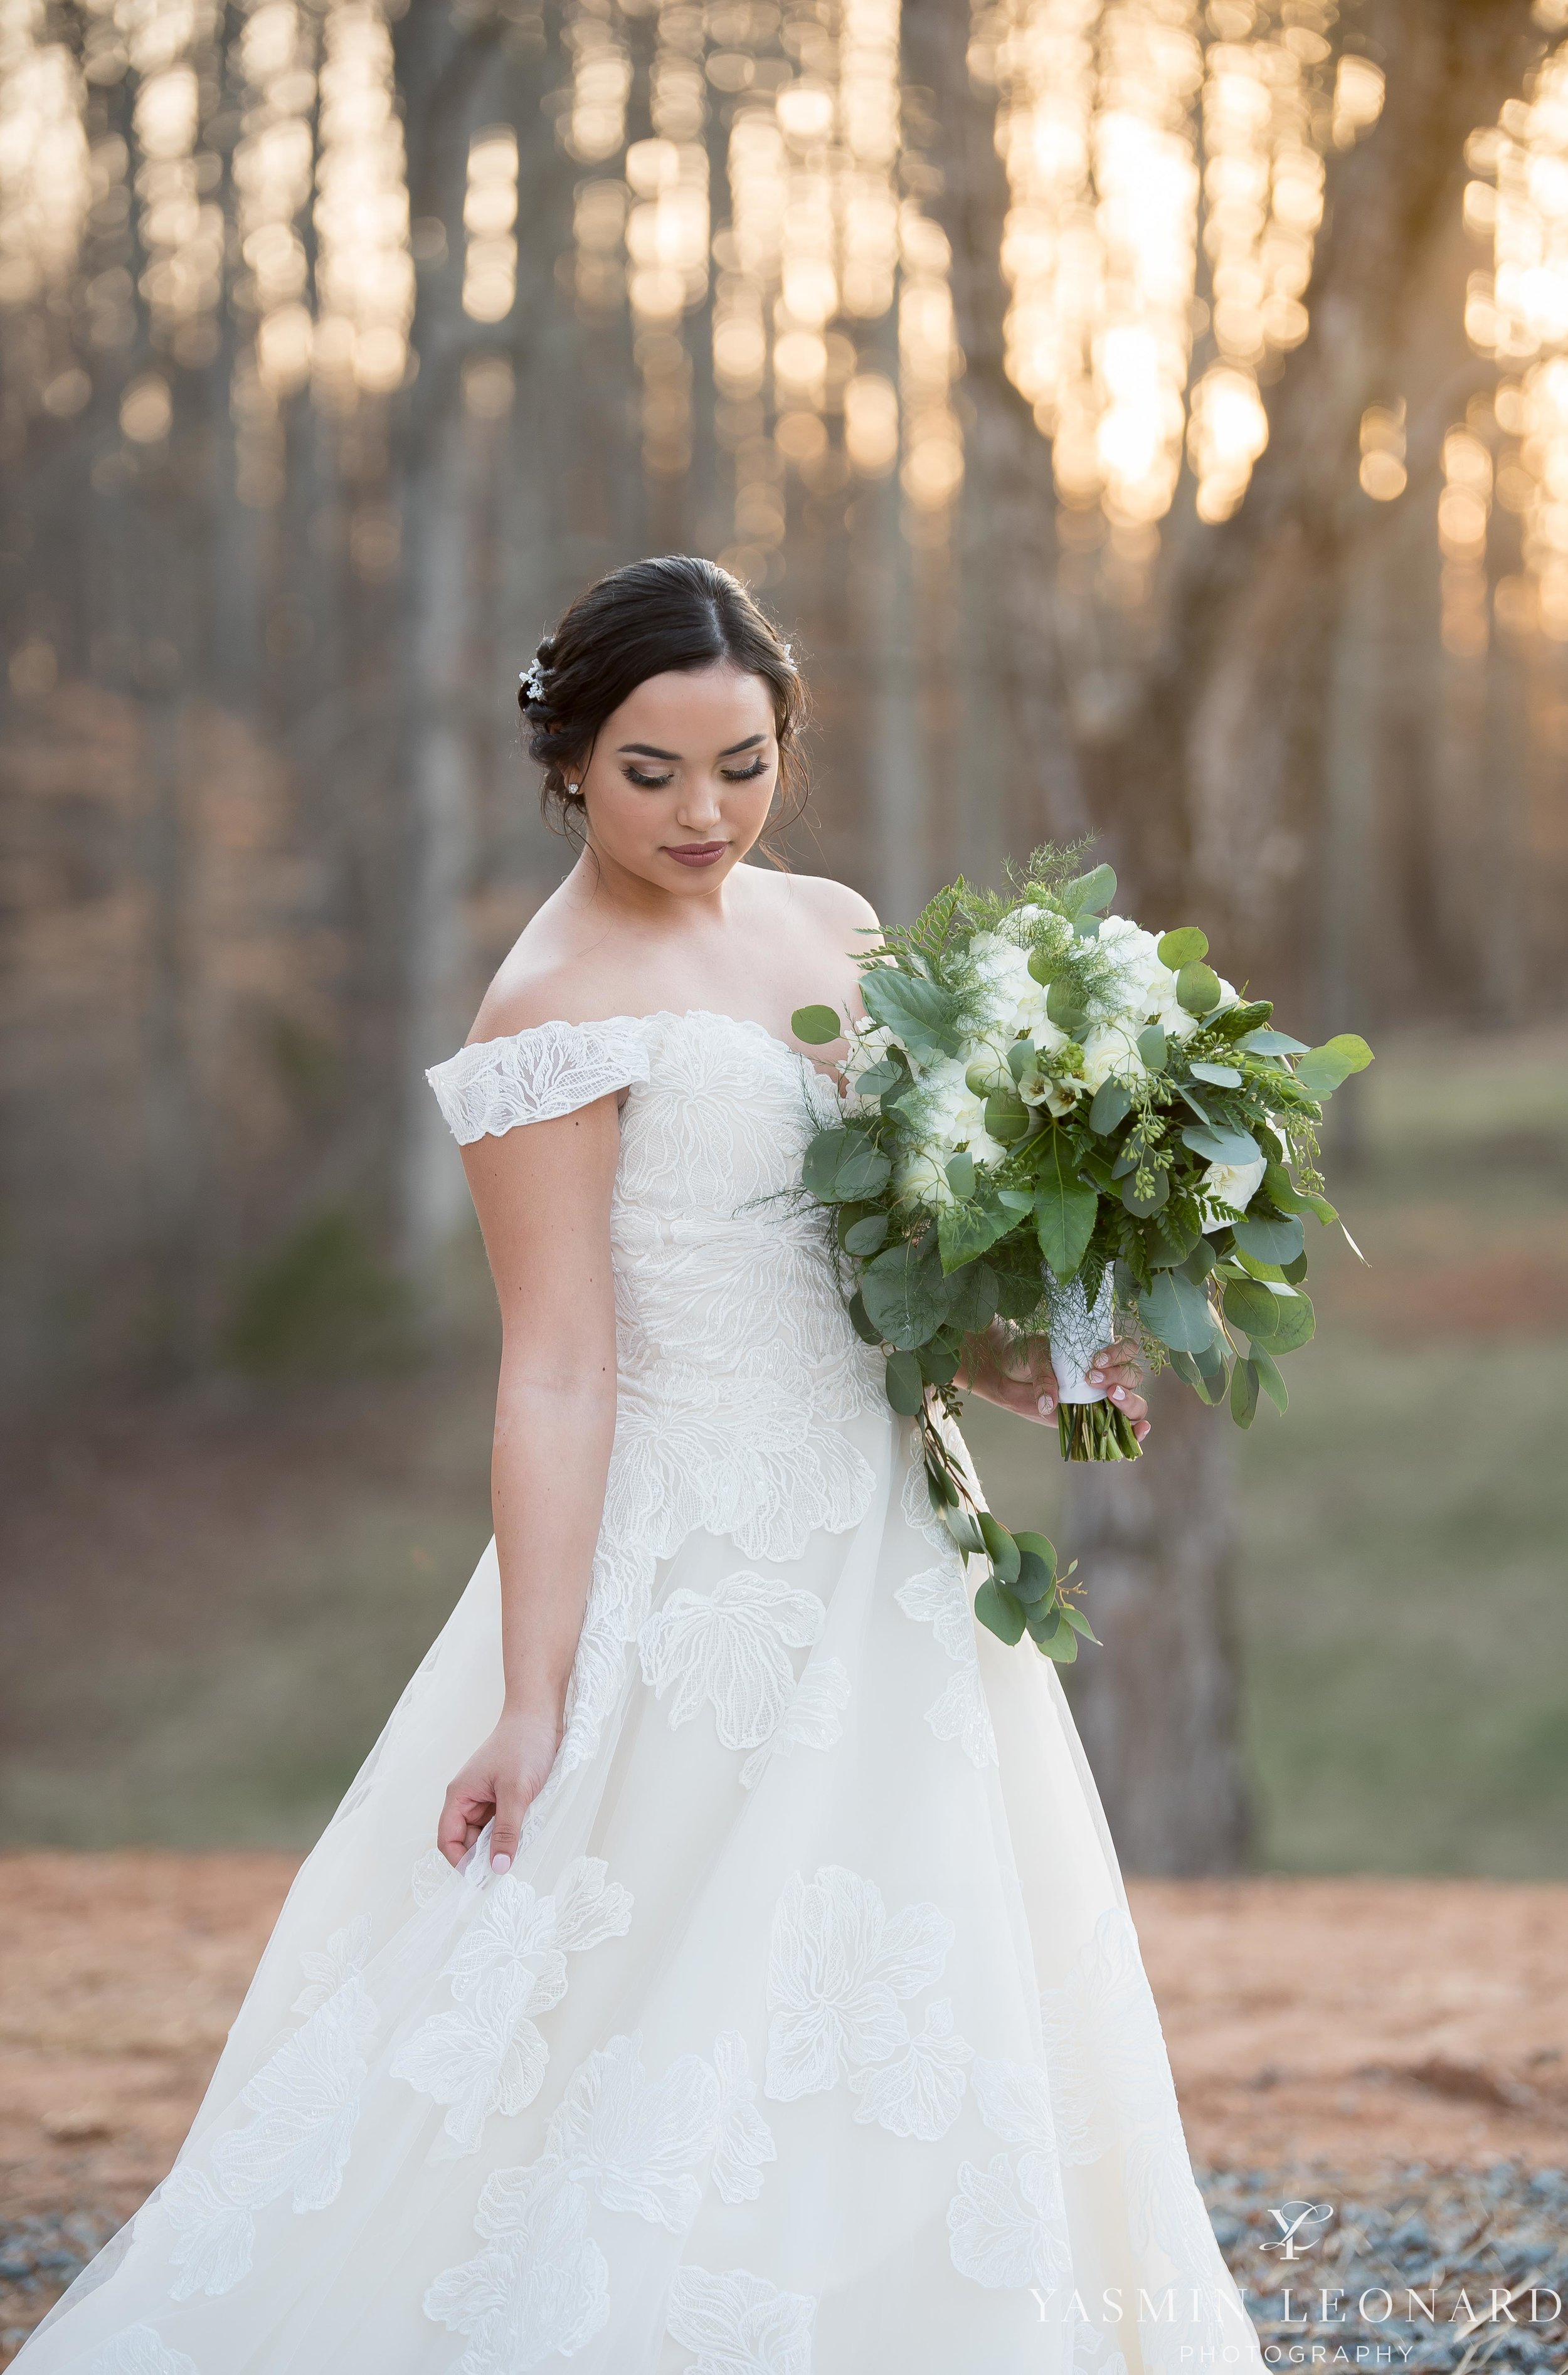 Old Homeplace Vineyard - Grits and Glitter - Dashing Dames Bridal Boutique - Just Priceless - Yasmin Leonard Photography - High Point Weddings - NC Weddings - NC Wedding Venues - High Point Jewelers - NC Wines - NC Vineyards - Cupcake Cuties-105.jpg